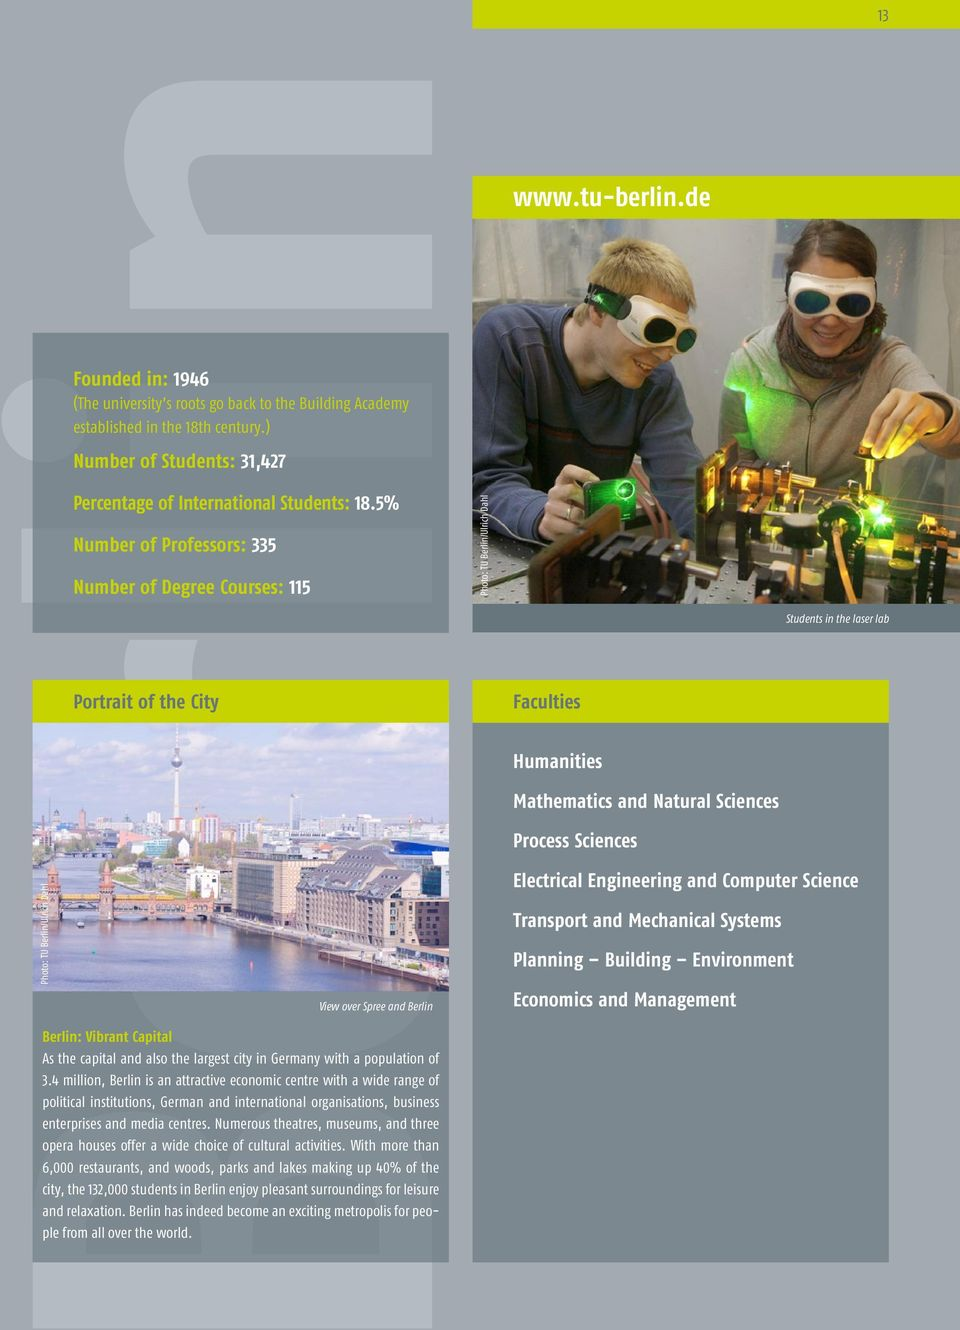 5% Number of Professors: 335 Number of Degree Courses: 115 Portrait of the City View over Spree and Berlin Berlin: Vibrant Capital As the capital and also the largest city in Germany with a